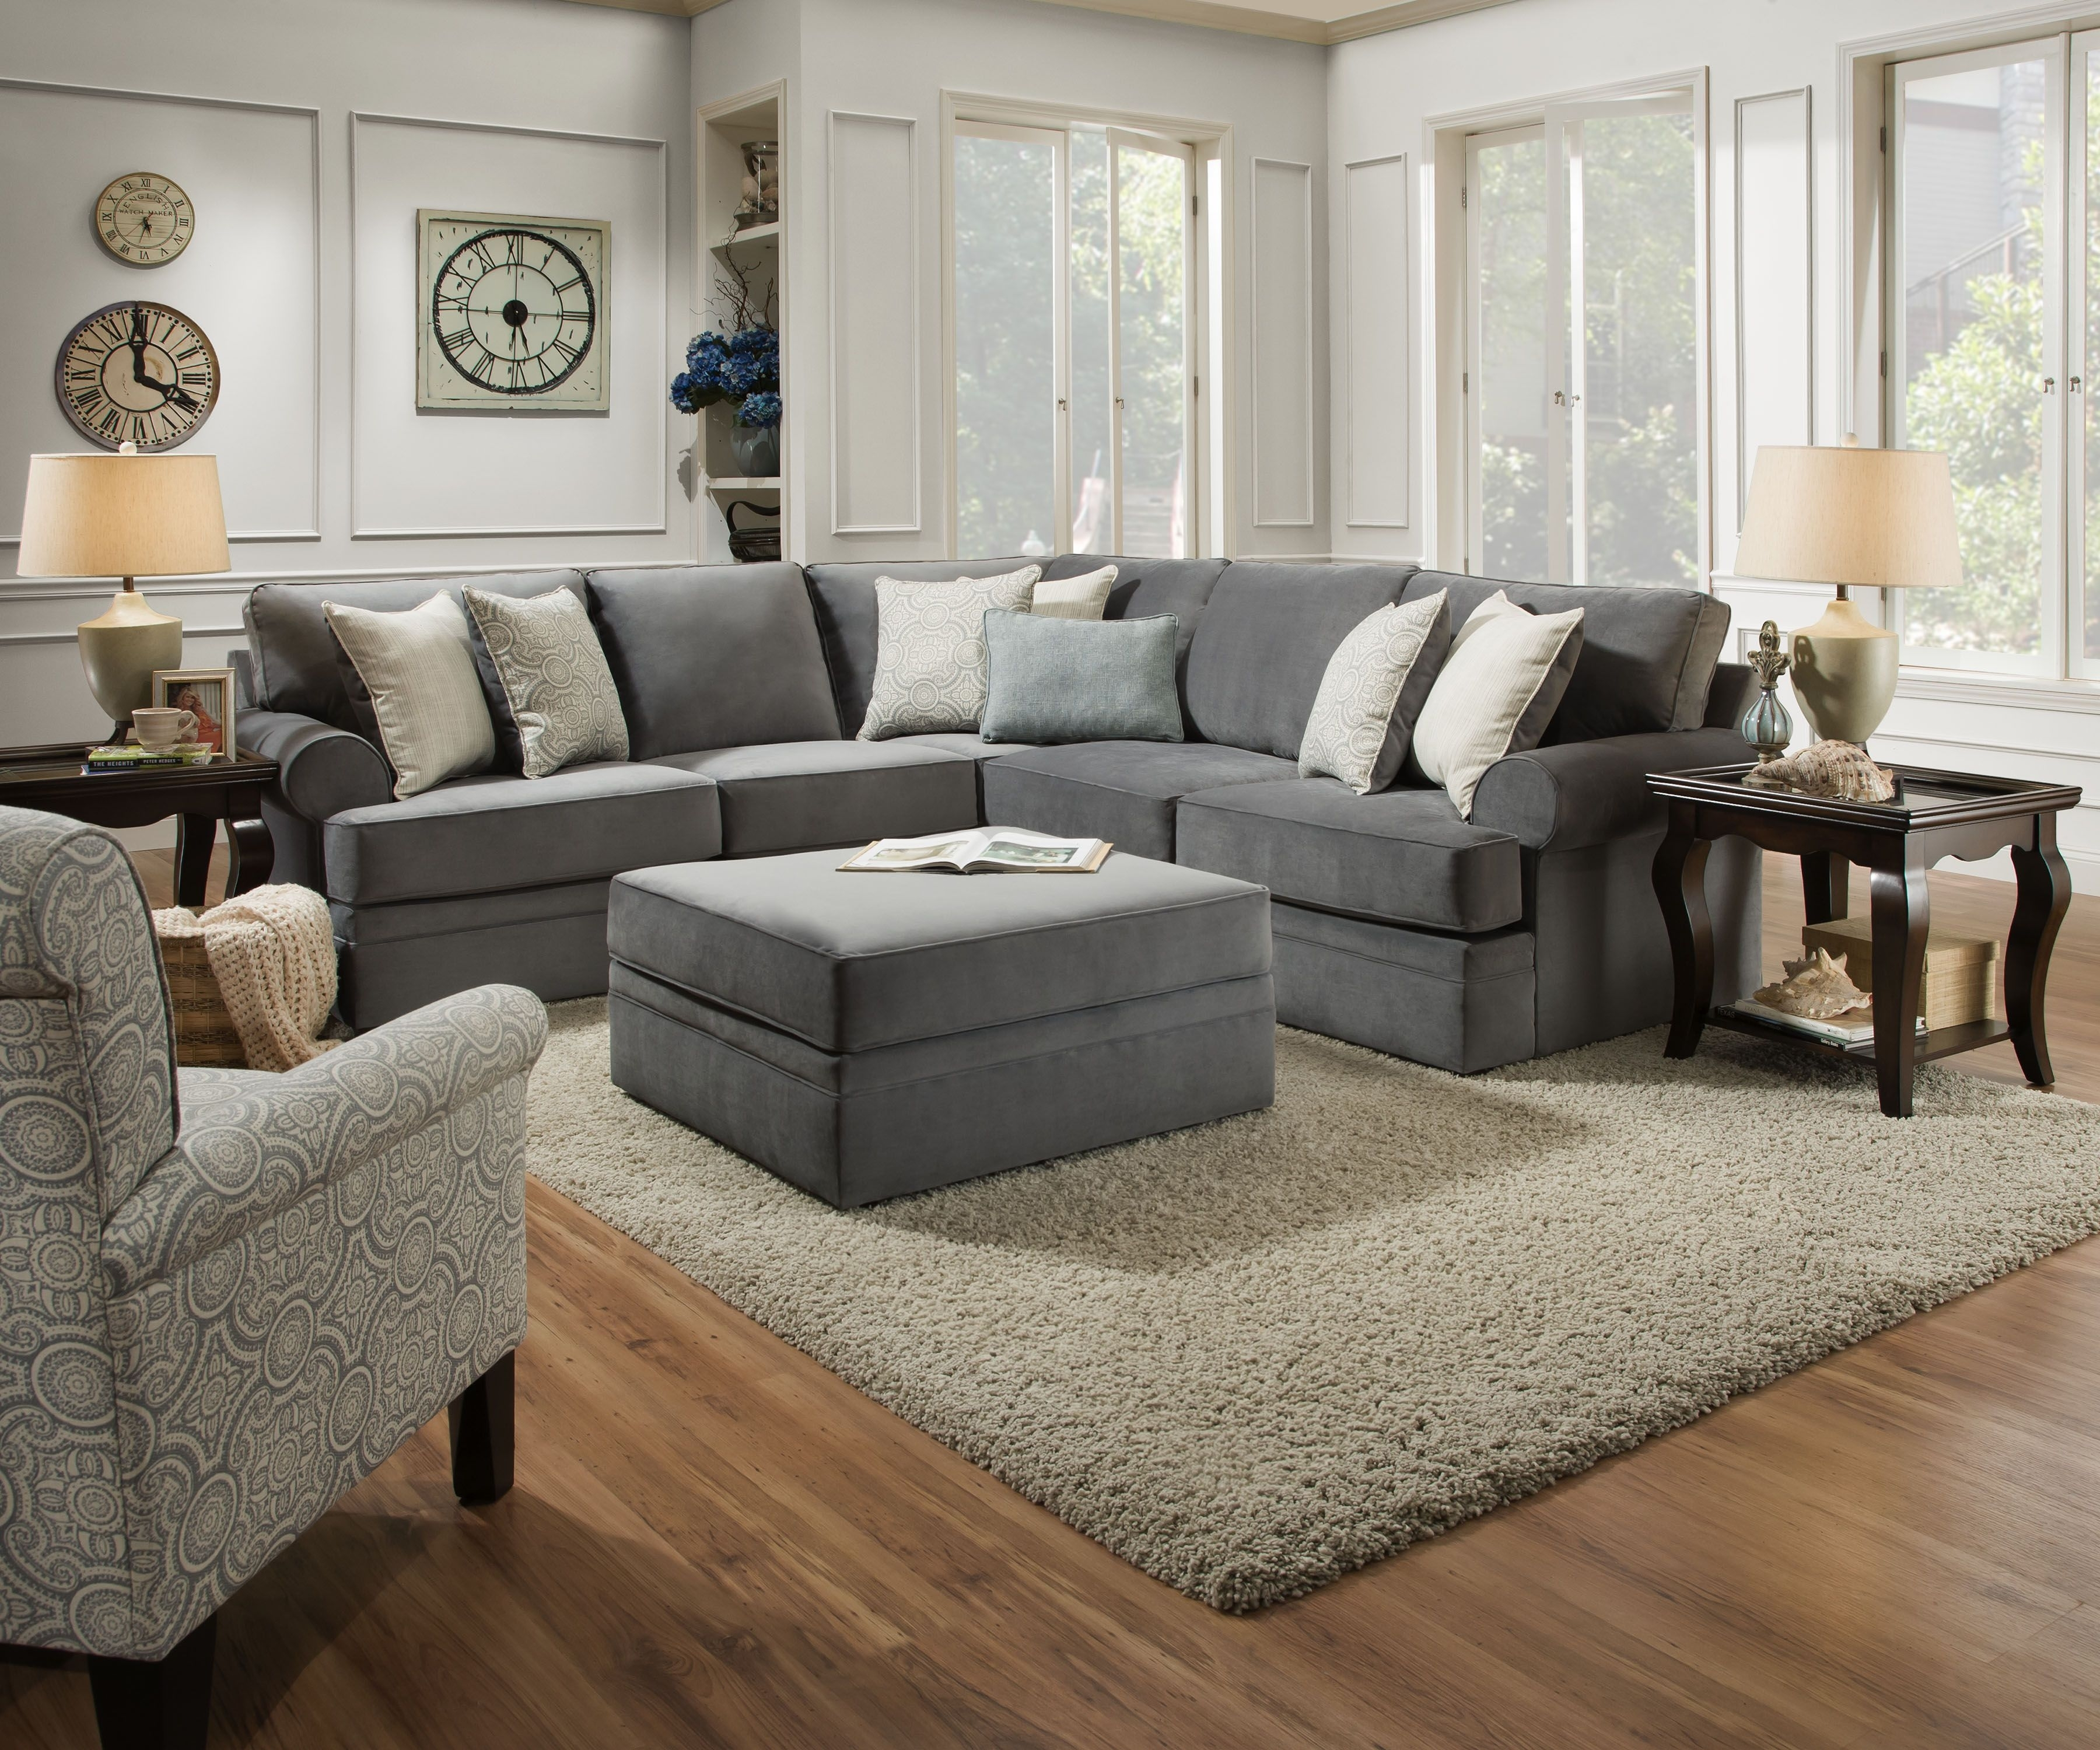 Laf Sofa Seven Seas | Baci Living Room with regard to Avery 2 Piece Sectionals With Laf Armless Chaise (Image 16 of 30)